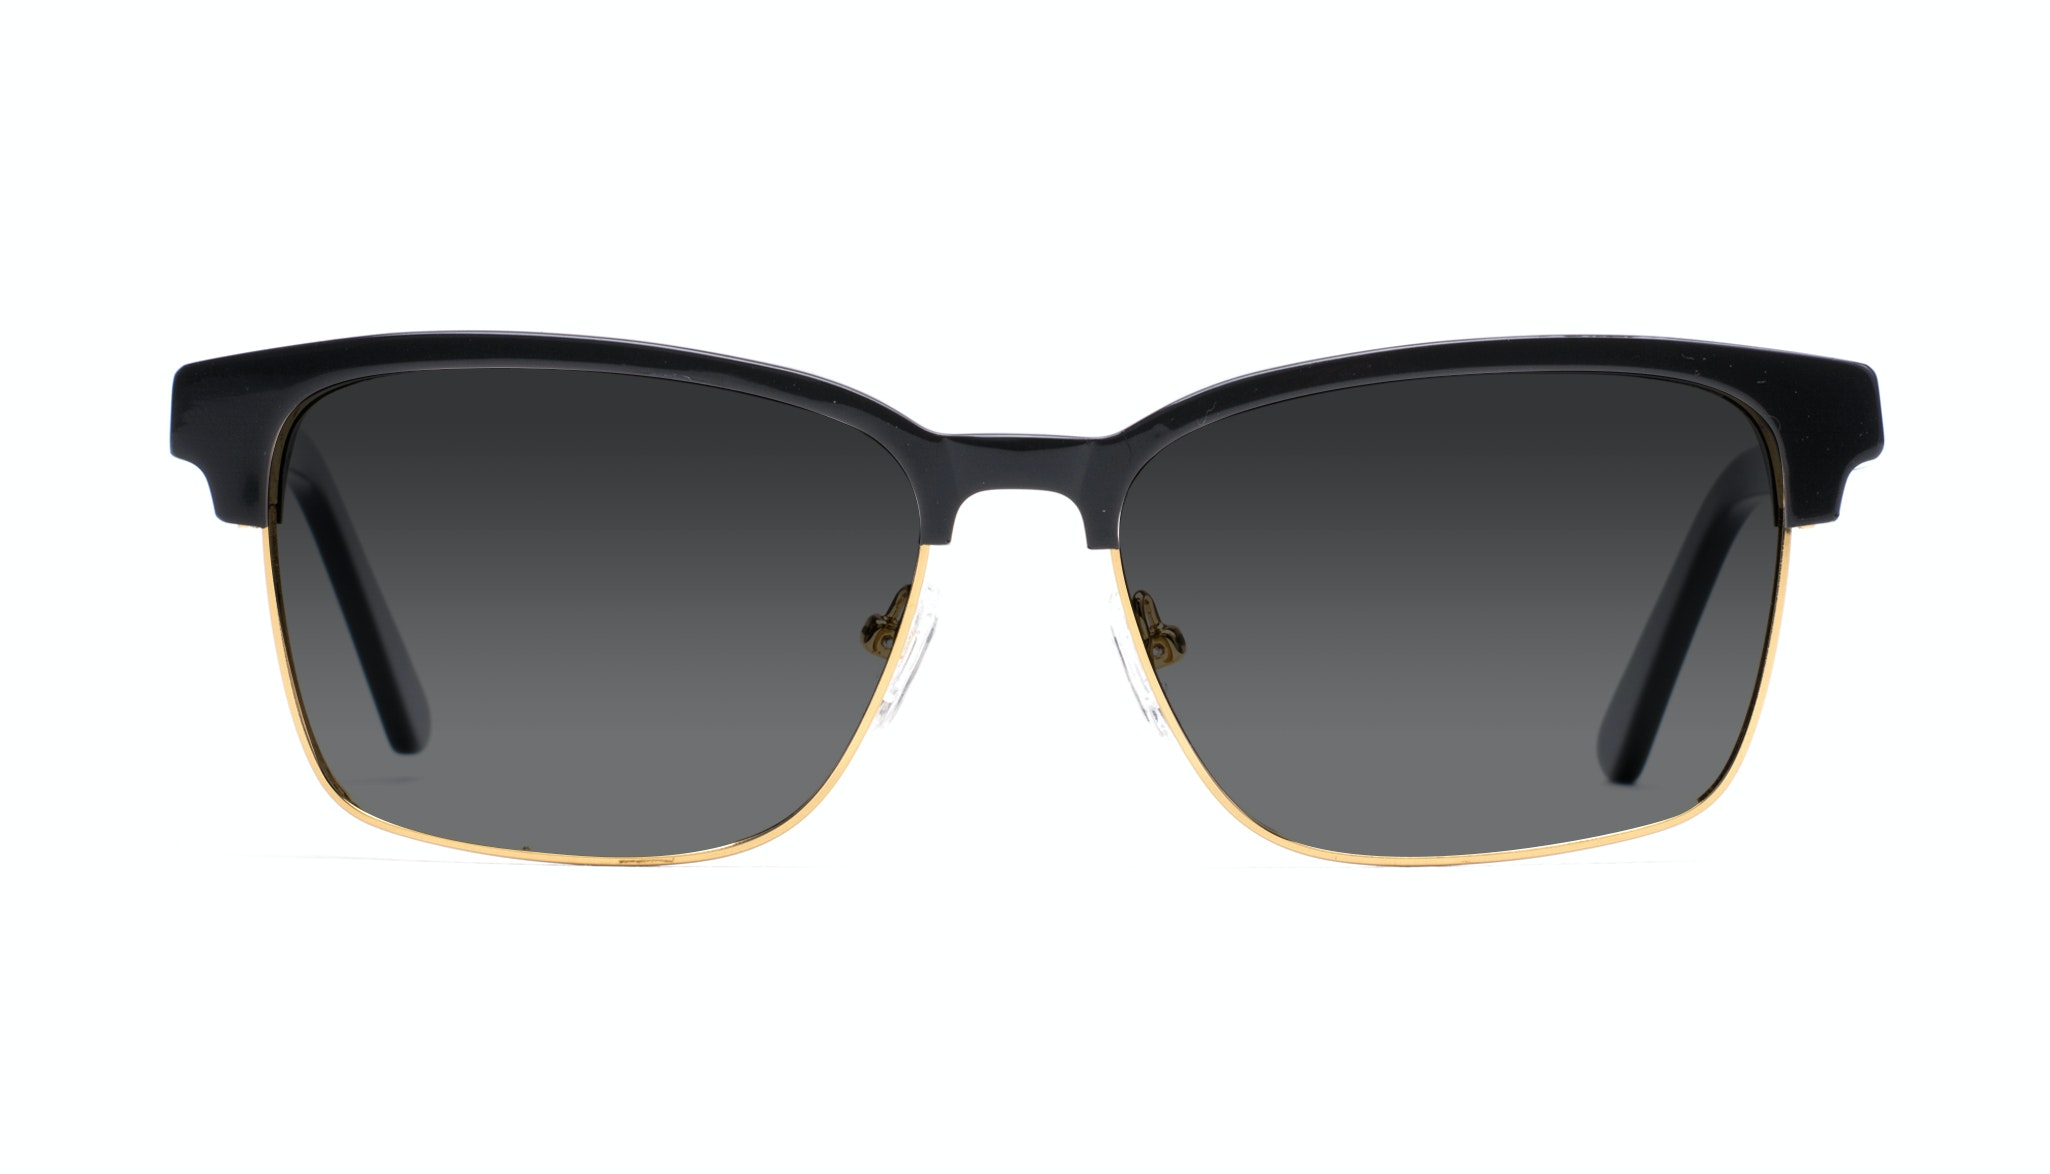 Affordable Fashion Glasses Rectangle Square Sunglasses Men Gallery Black